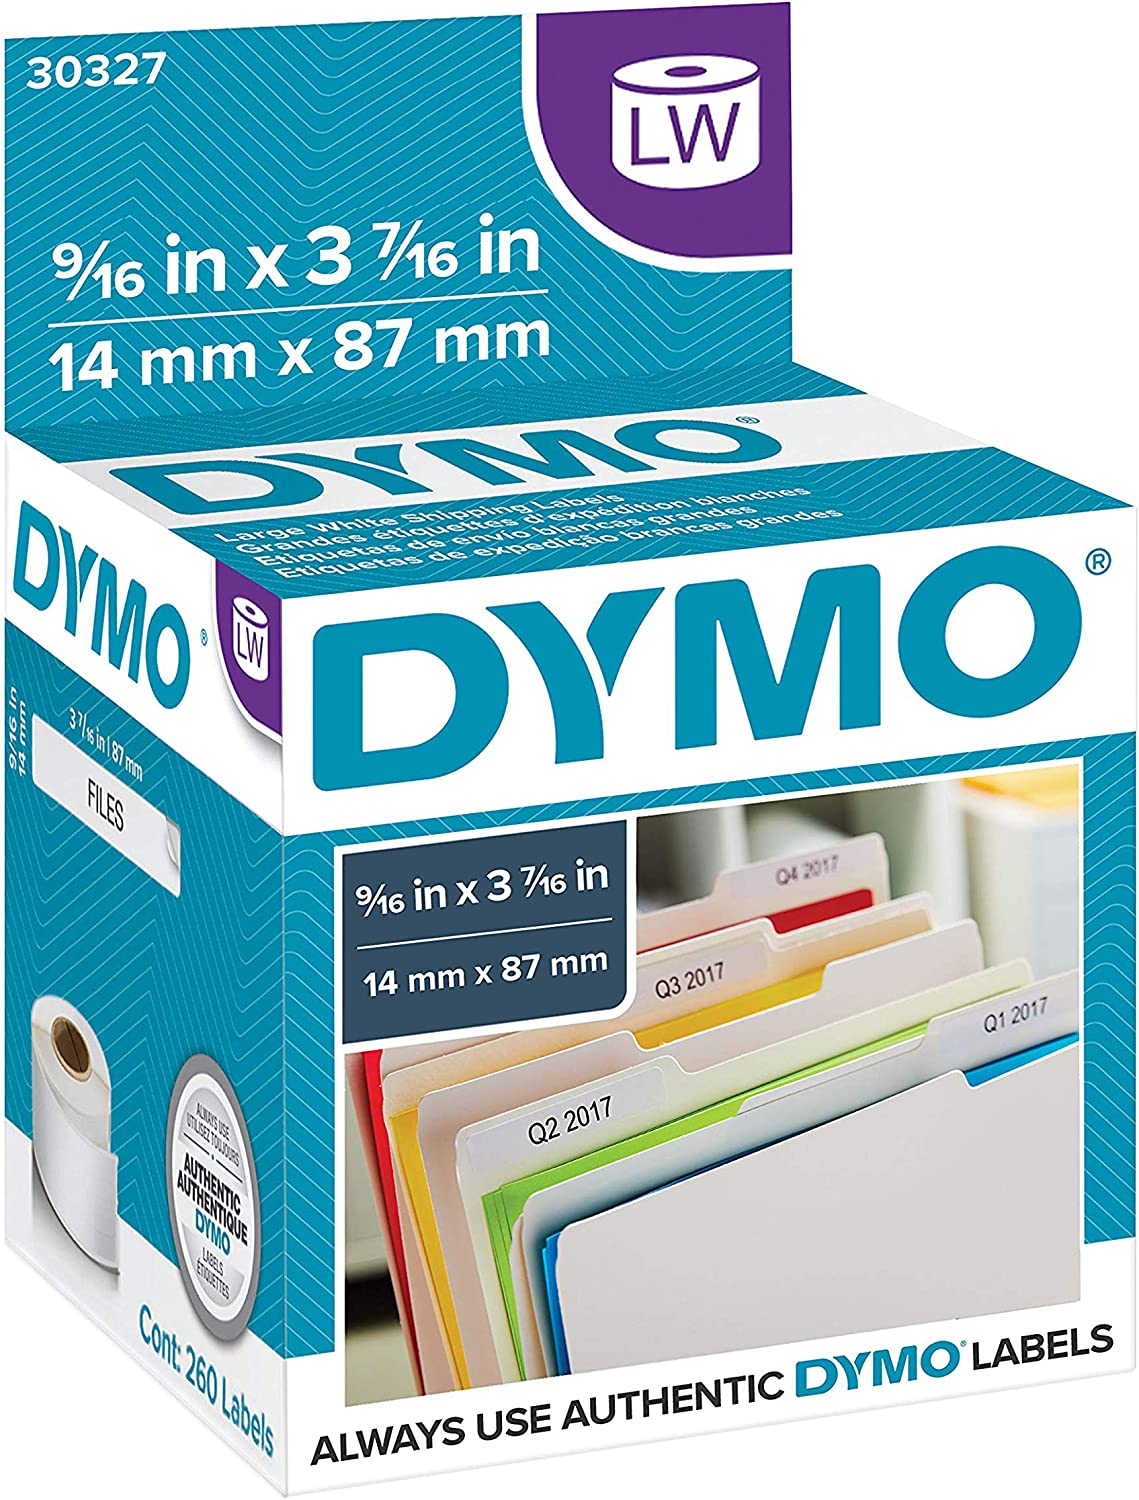 DYMO LW 1-Up File Folder Labels for LabelWriter Label Printers, White, 9/16'' x 3-7/16'', 2 Rolls of 130 (30327) : Printer Labels : Office Products